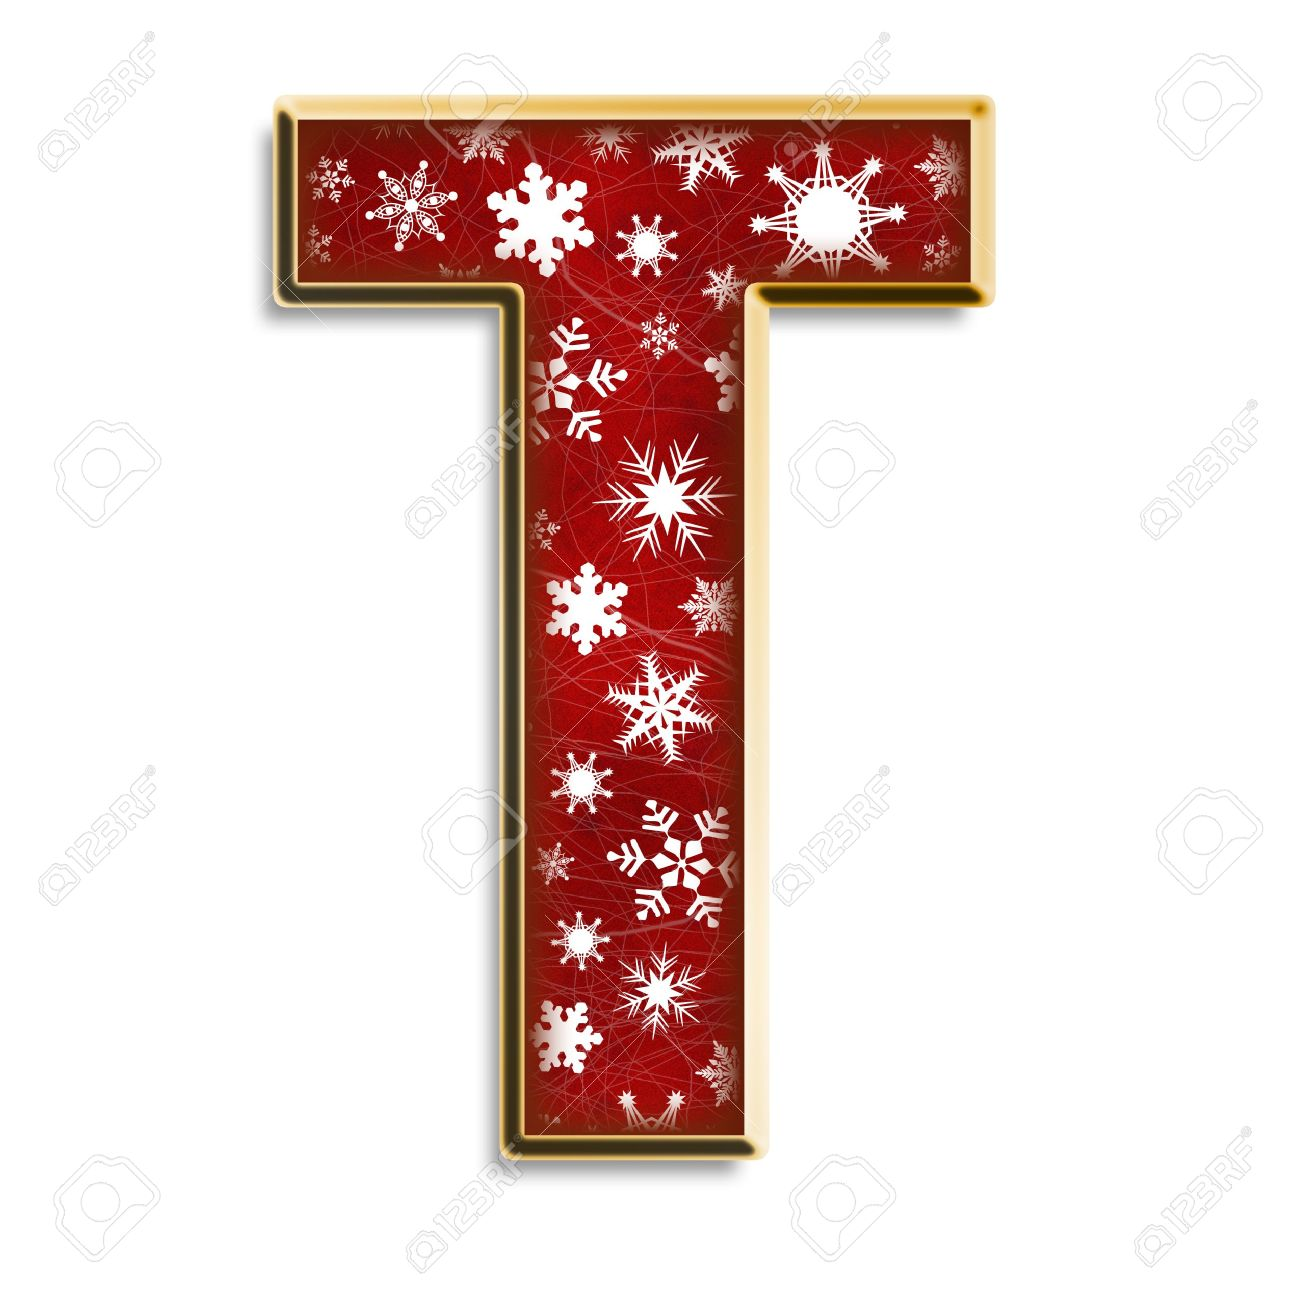 White Snowflakes On Red With Gold Capital Letter T Isolated On